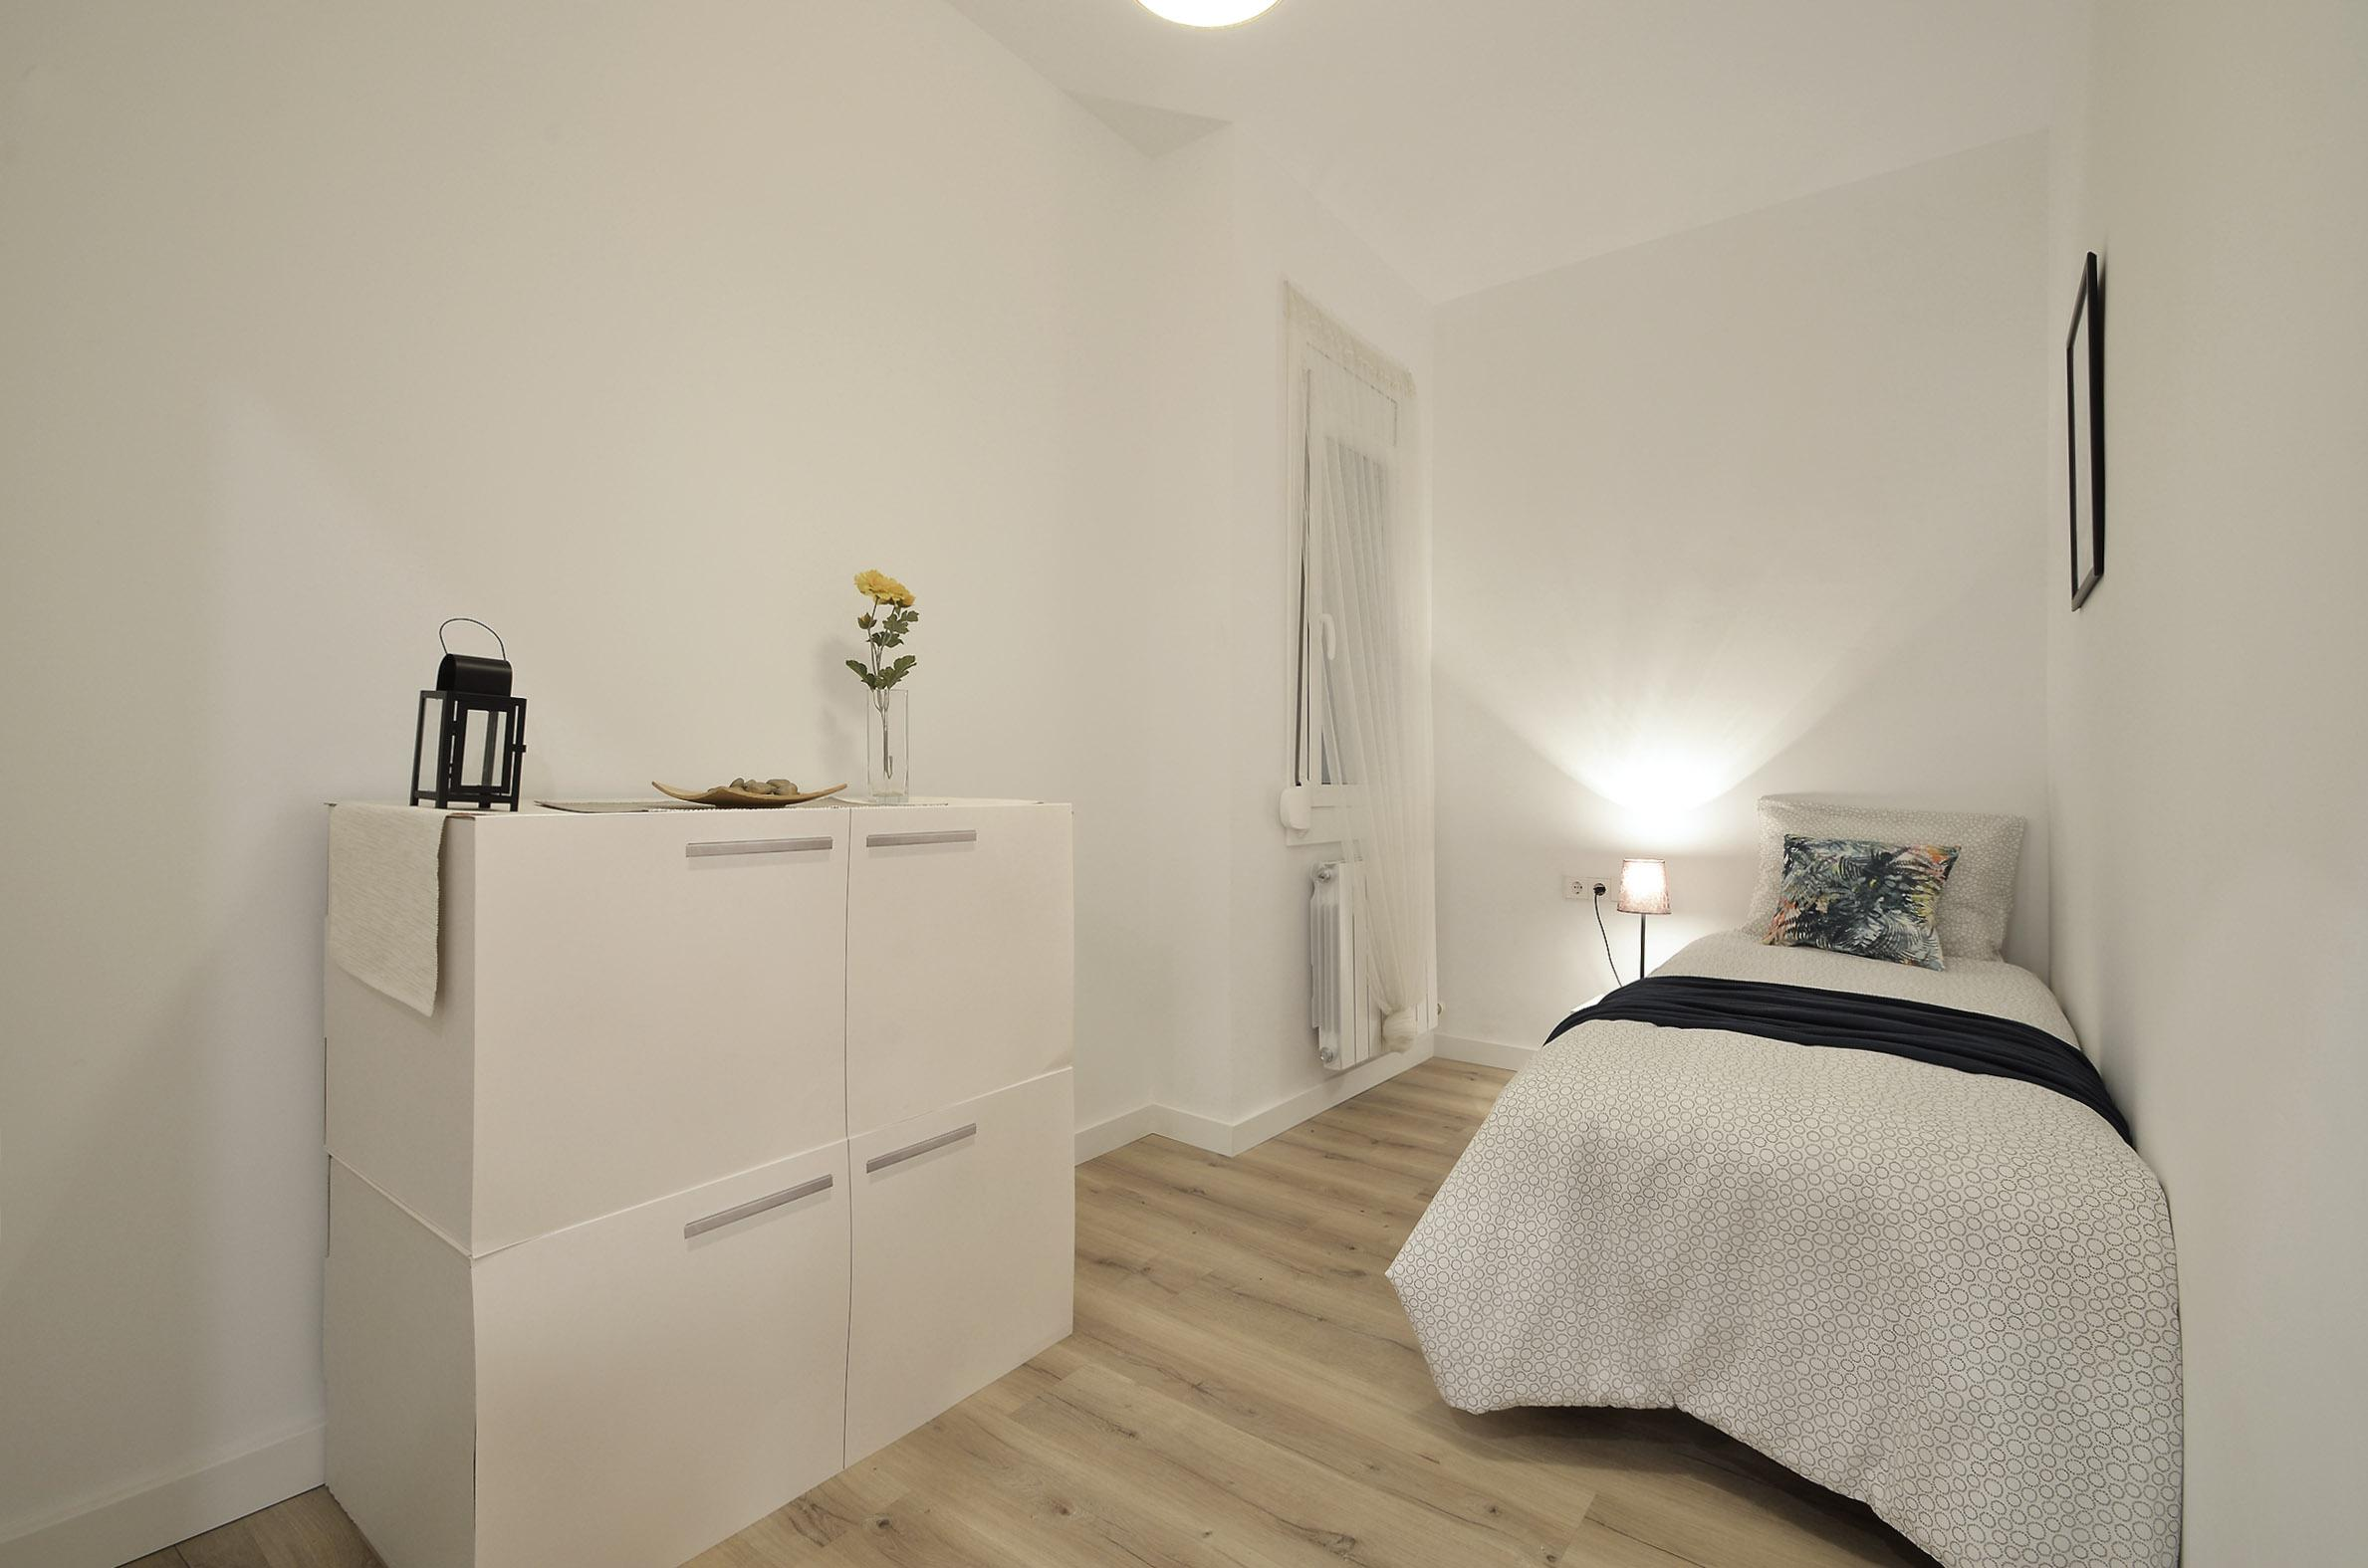 245687 Flat for sale in Eixample, Fort Pienc 11